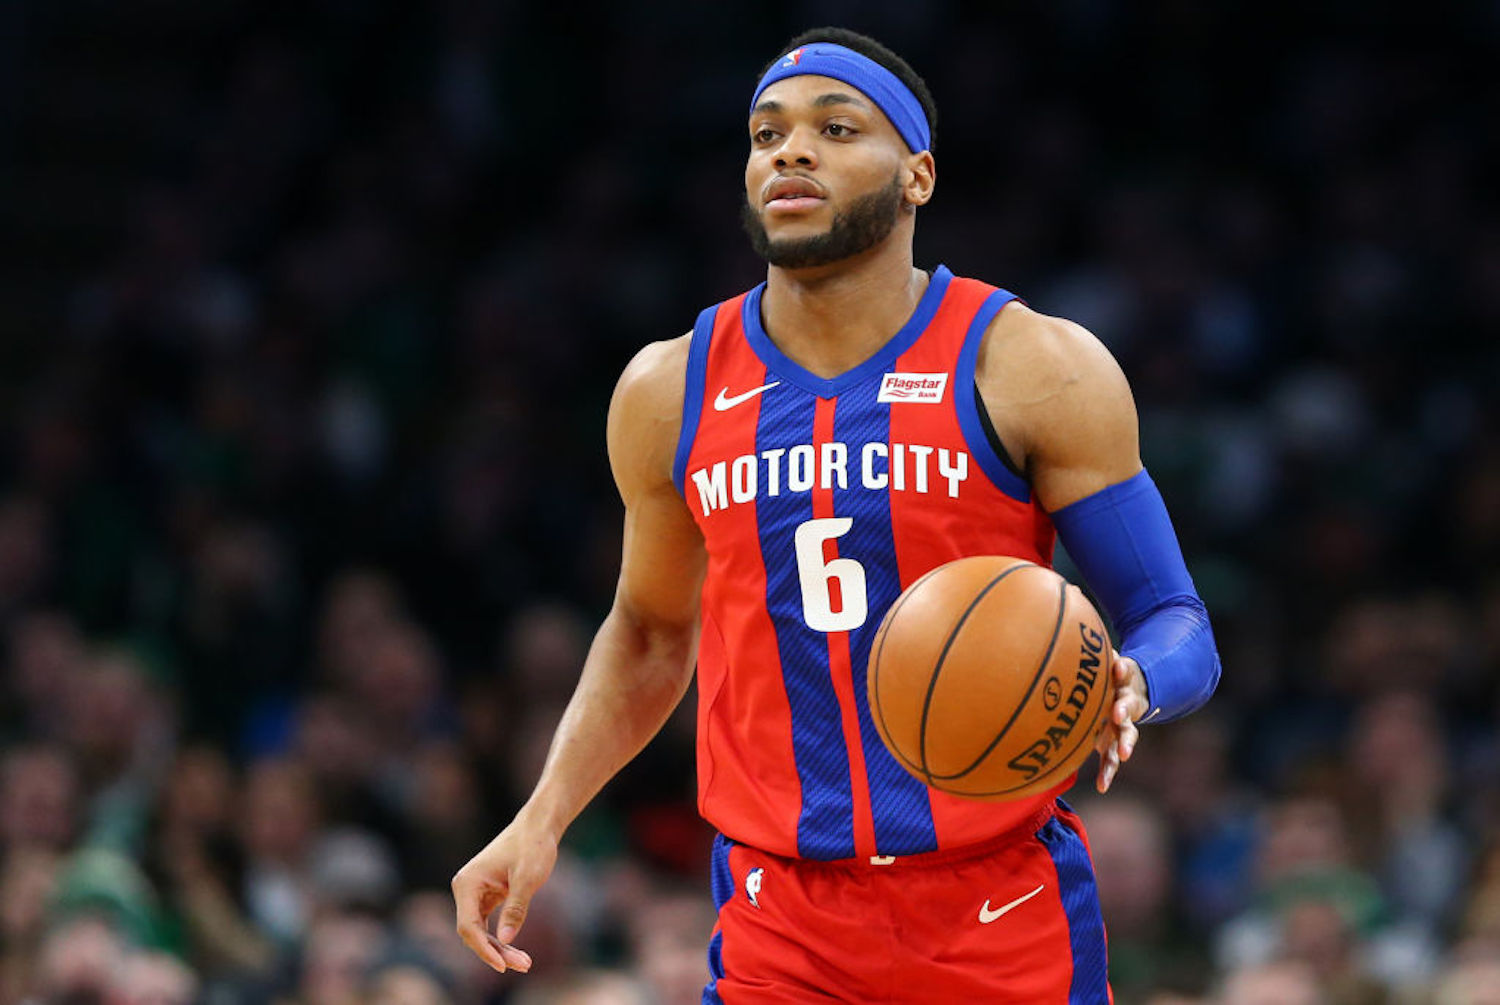 The Brooklyn Nets made their first move of the 2020-21 NBA season by trading for defensive-minded guard Bruce Brown.